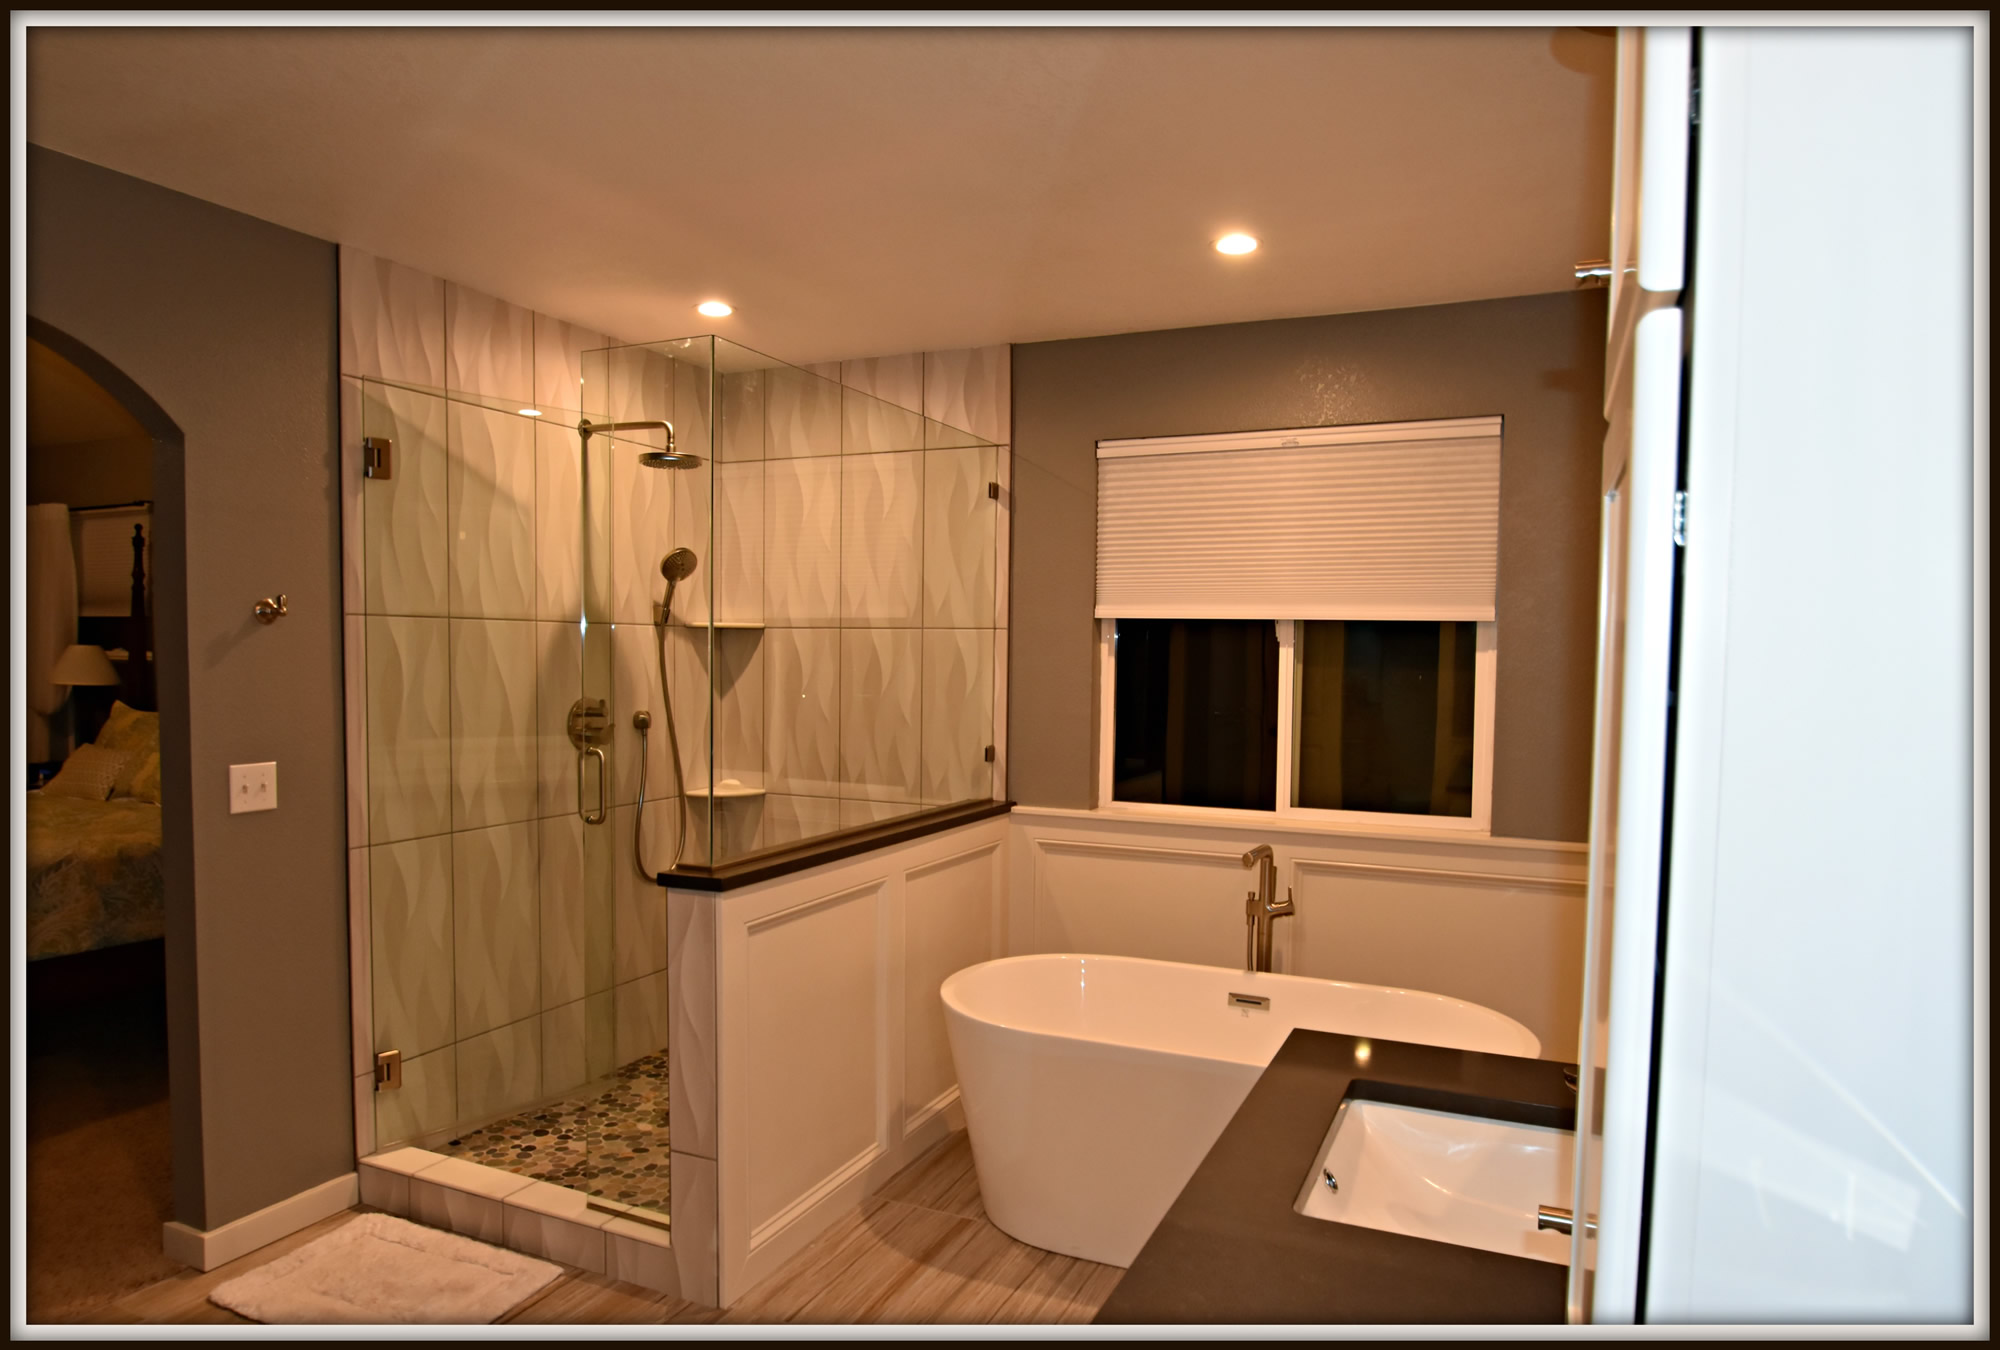 Highlands Ranch Remodel Runyan Construction - Bathroom remodel highlands ranch co